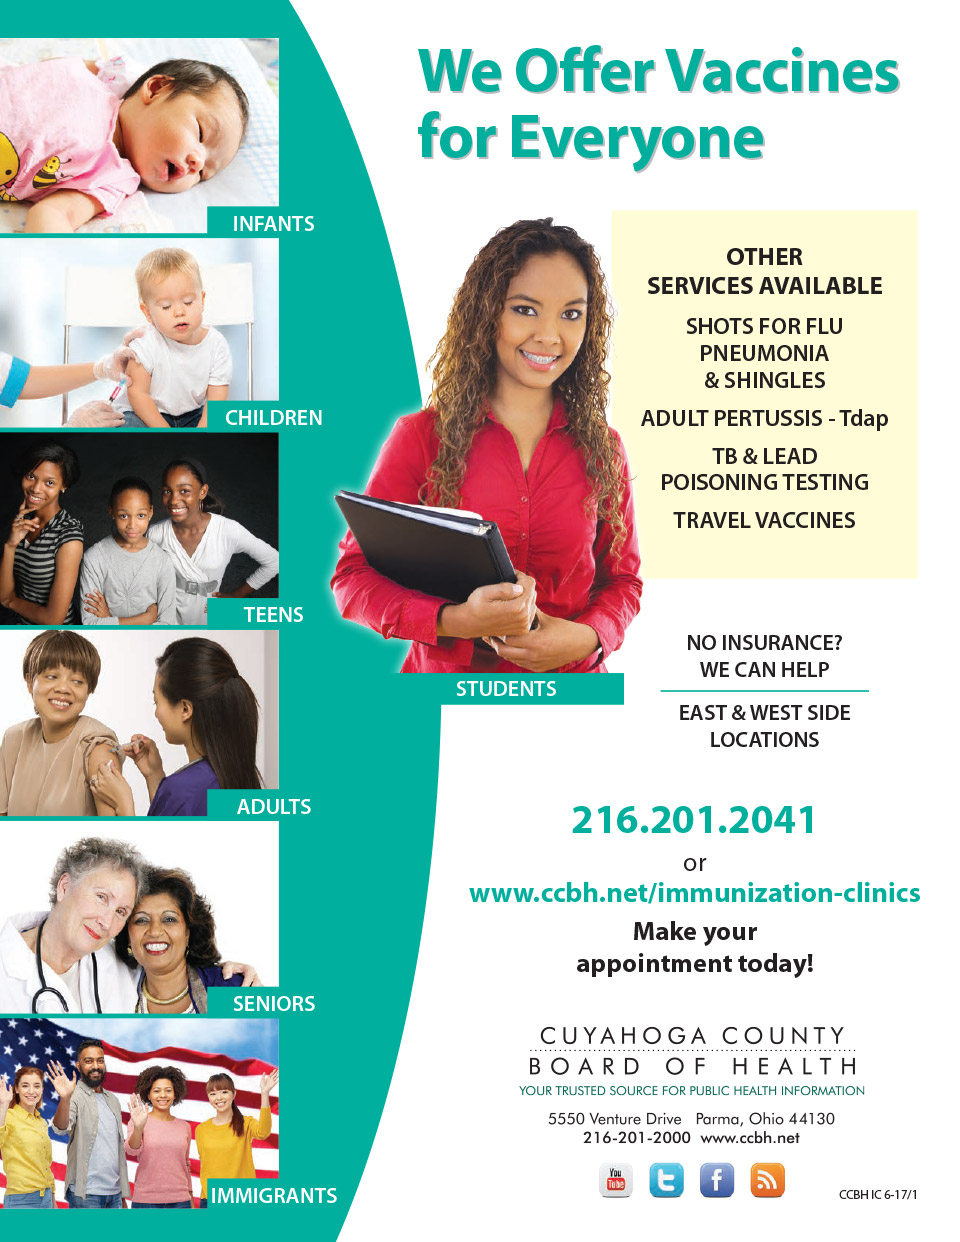 Cuyahoga County Board of Health - We Offer Vaccines for Everyone - City of Lyndhurst, Ohio